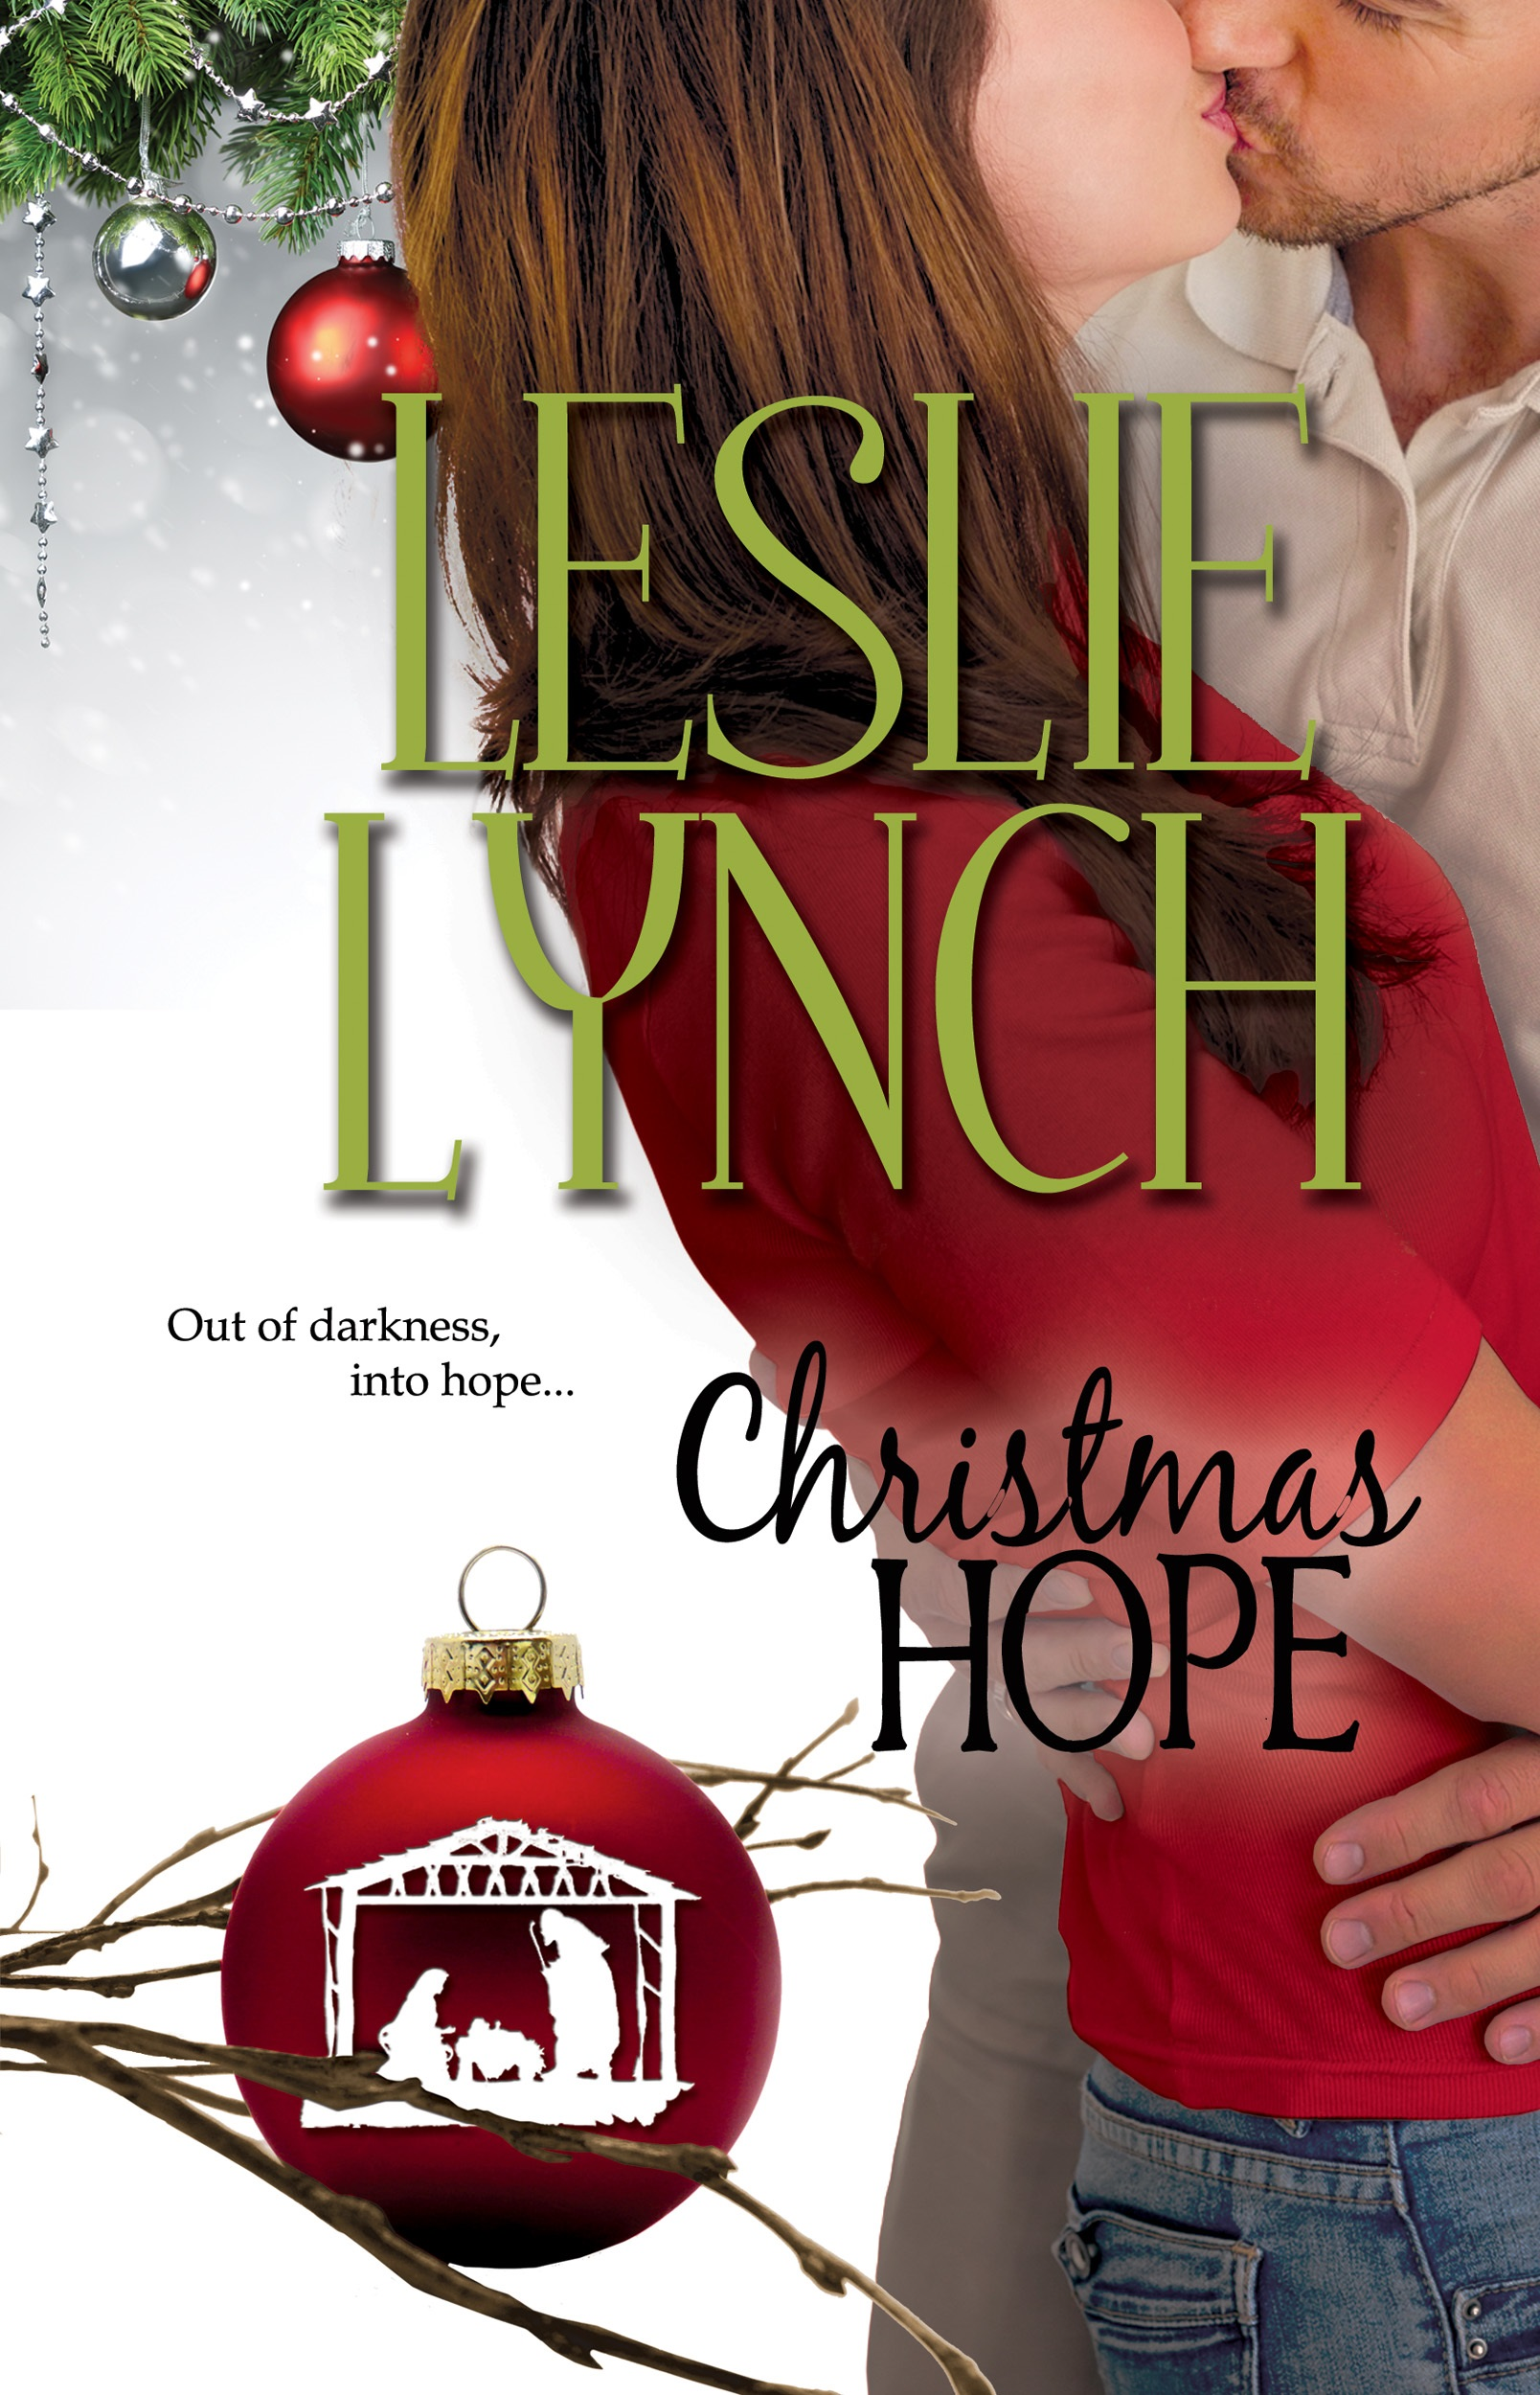 CHRISTMAS HOPE - Front Cover (for Amazon)